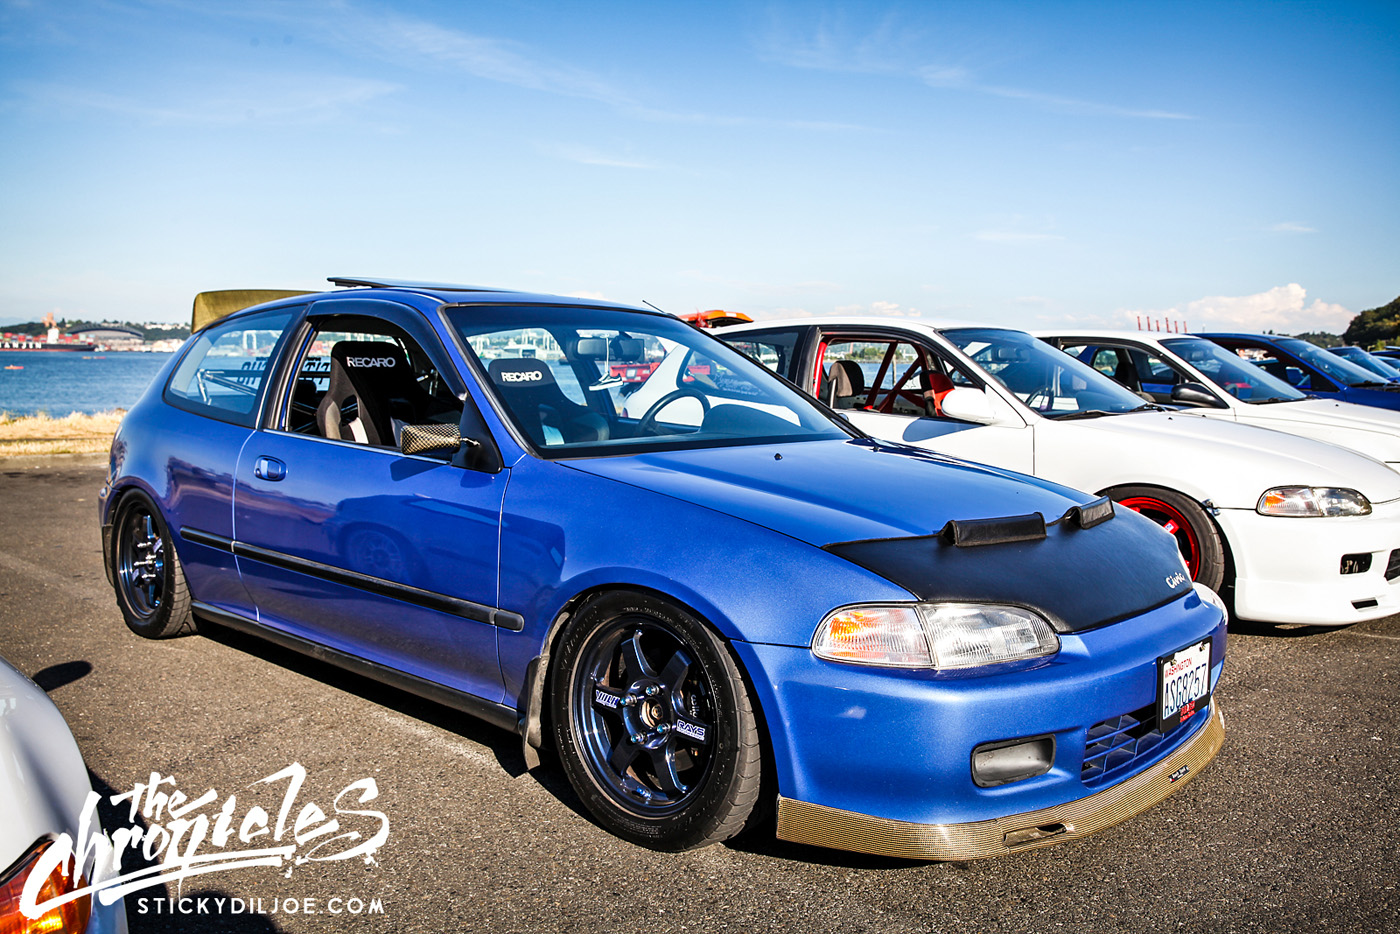 Stickydiljoe Alki Beach Meet 2015 Coverage…